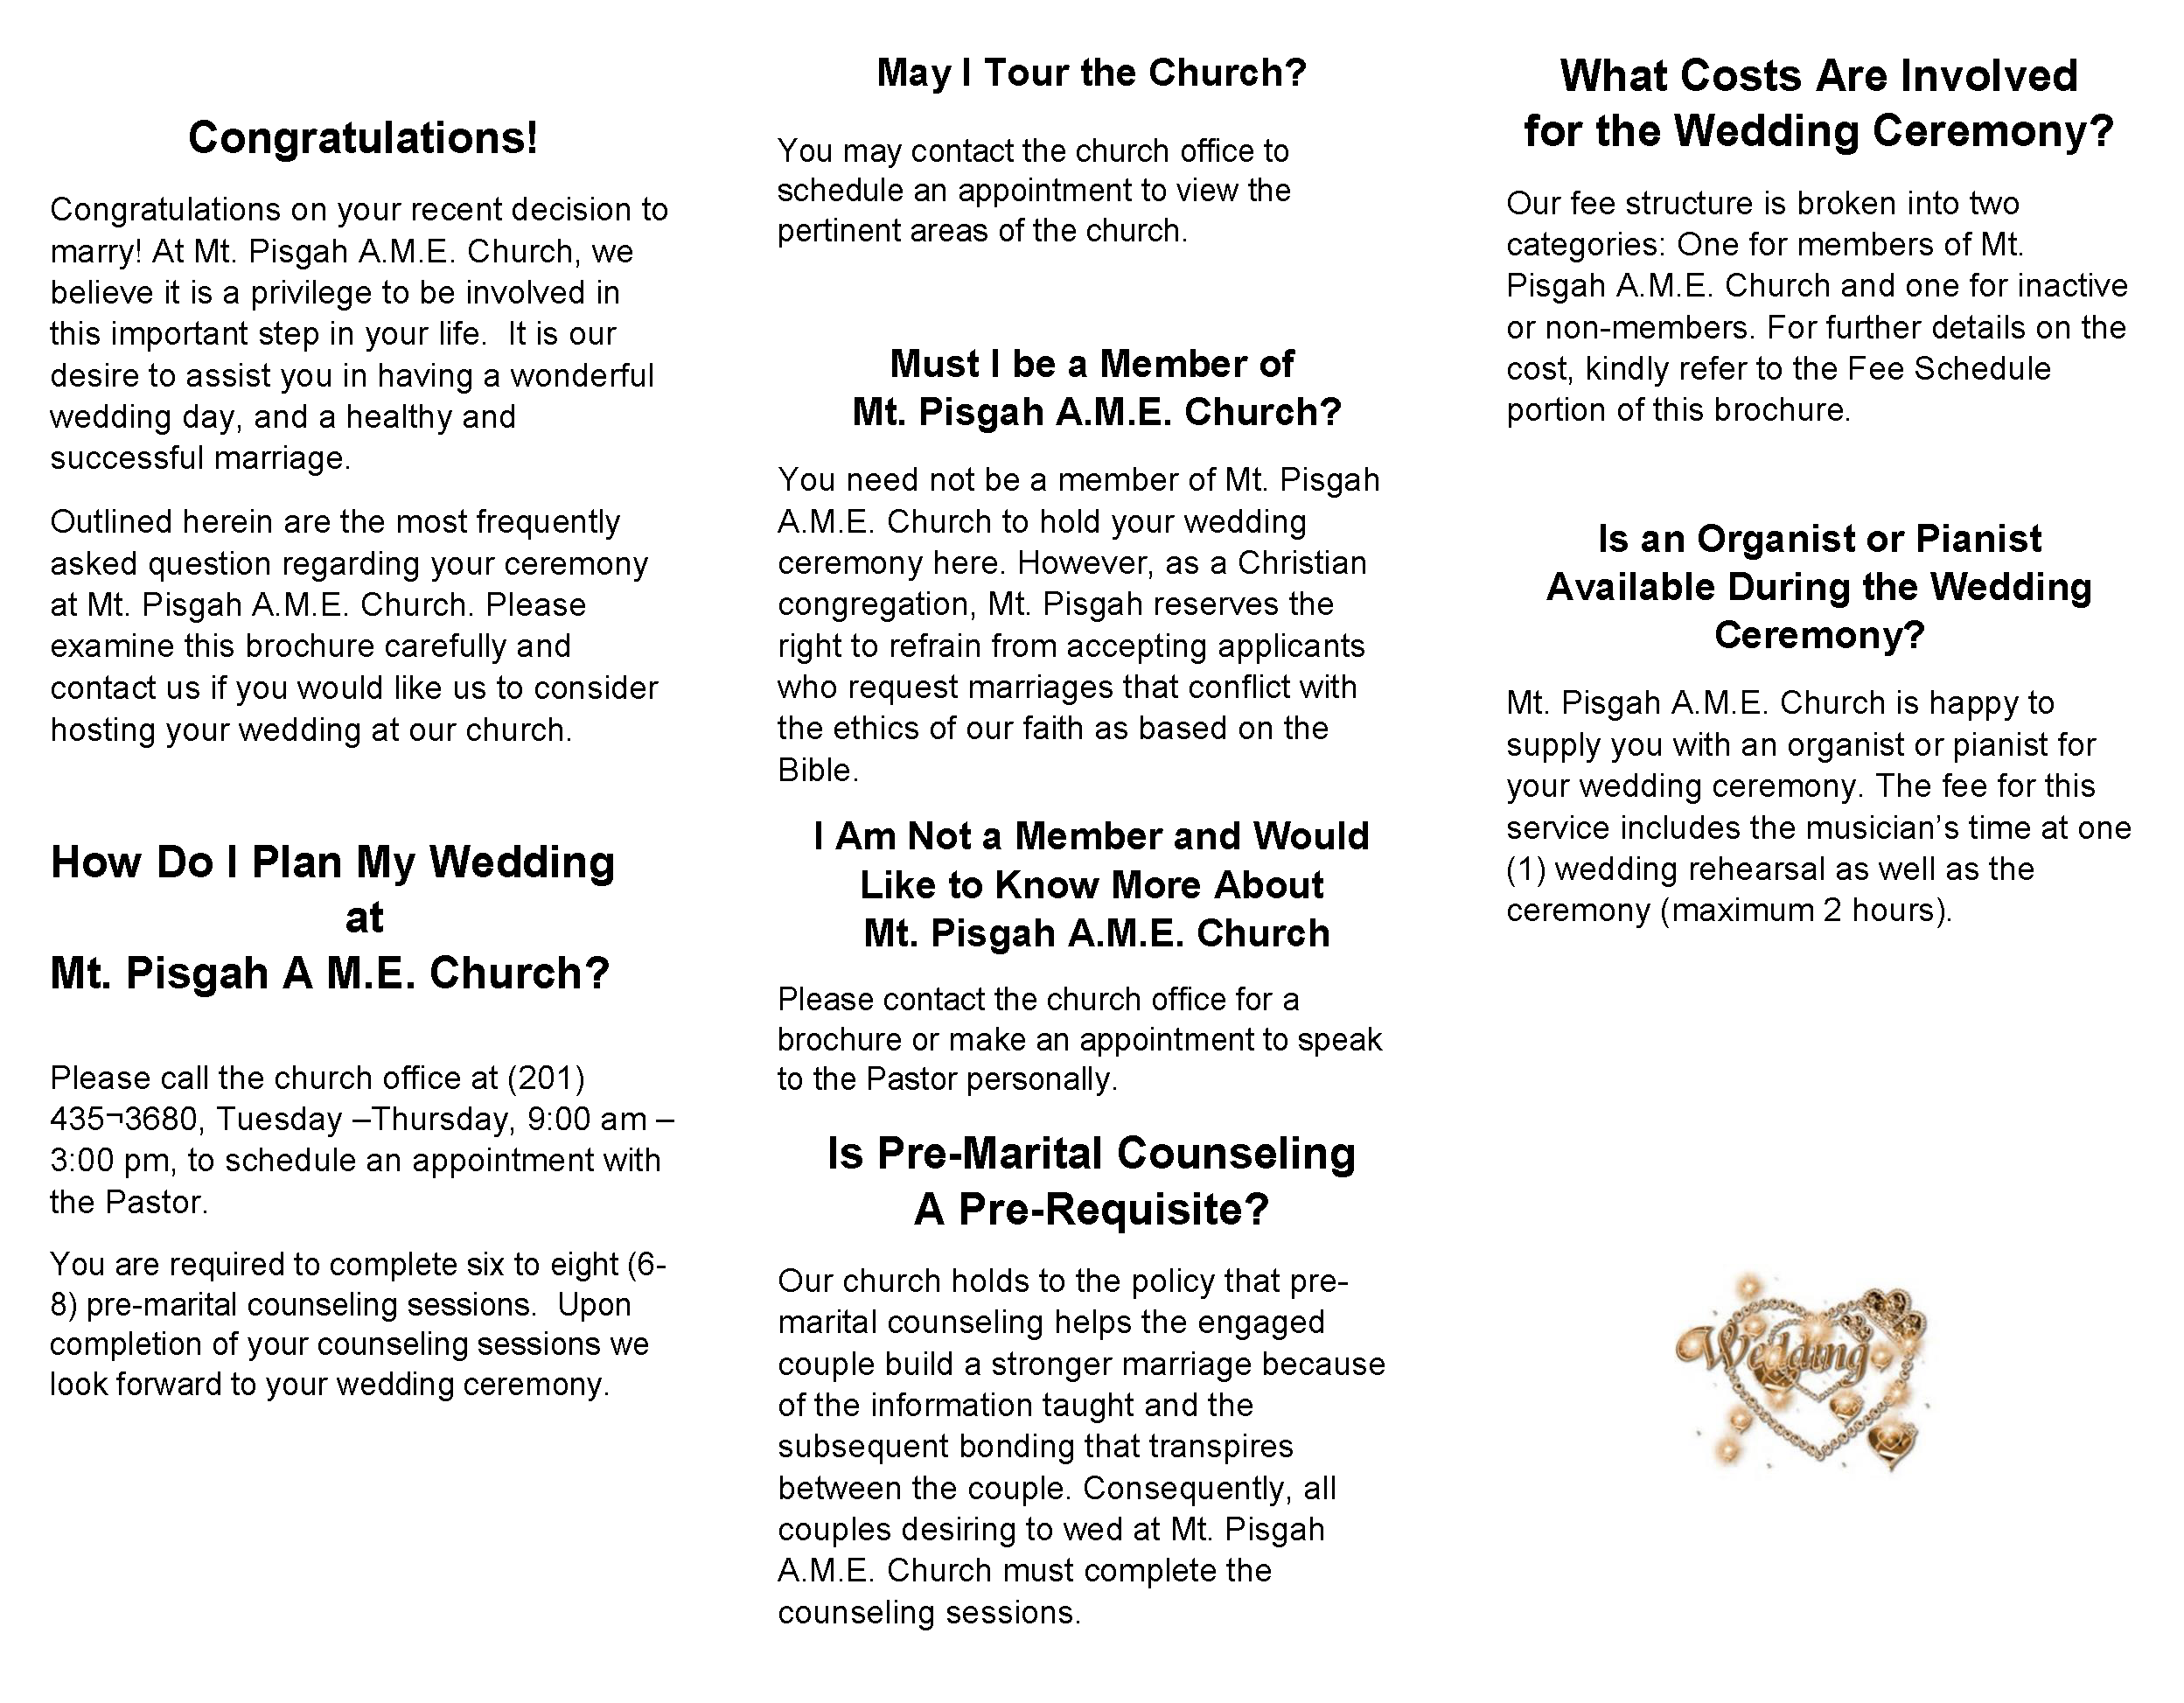 Updated Wedding Brochure_Page_2.png